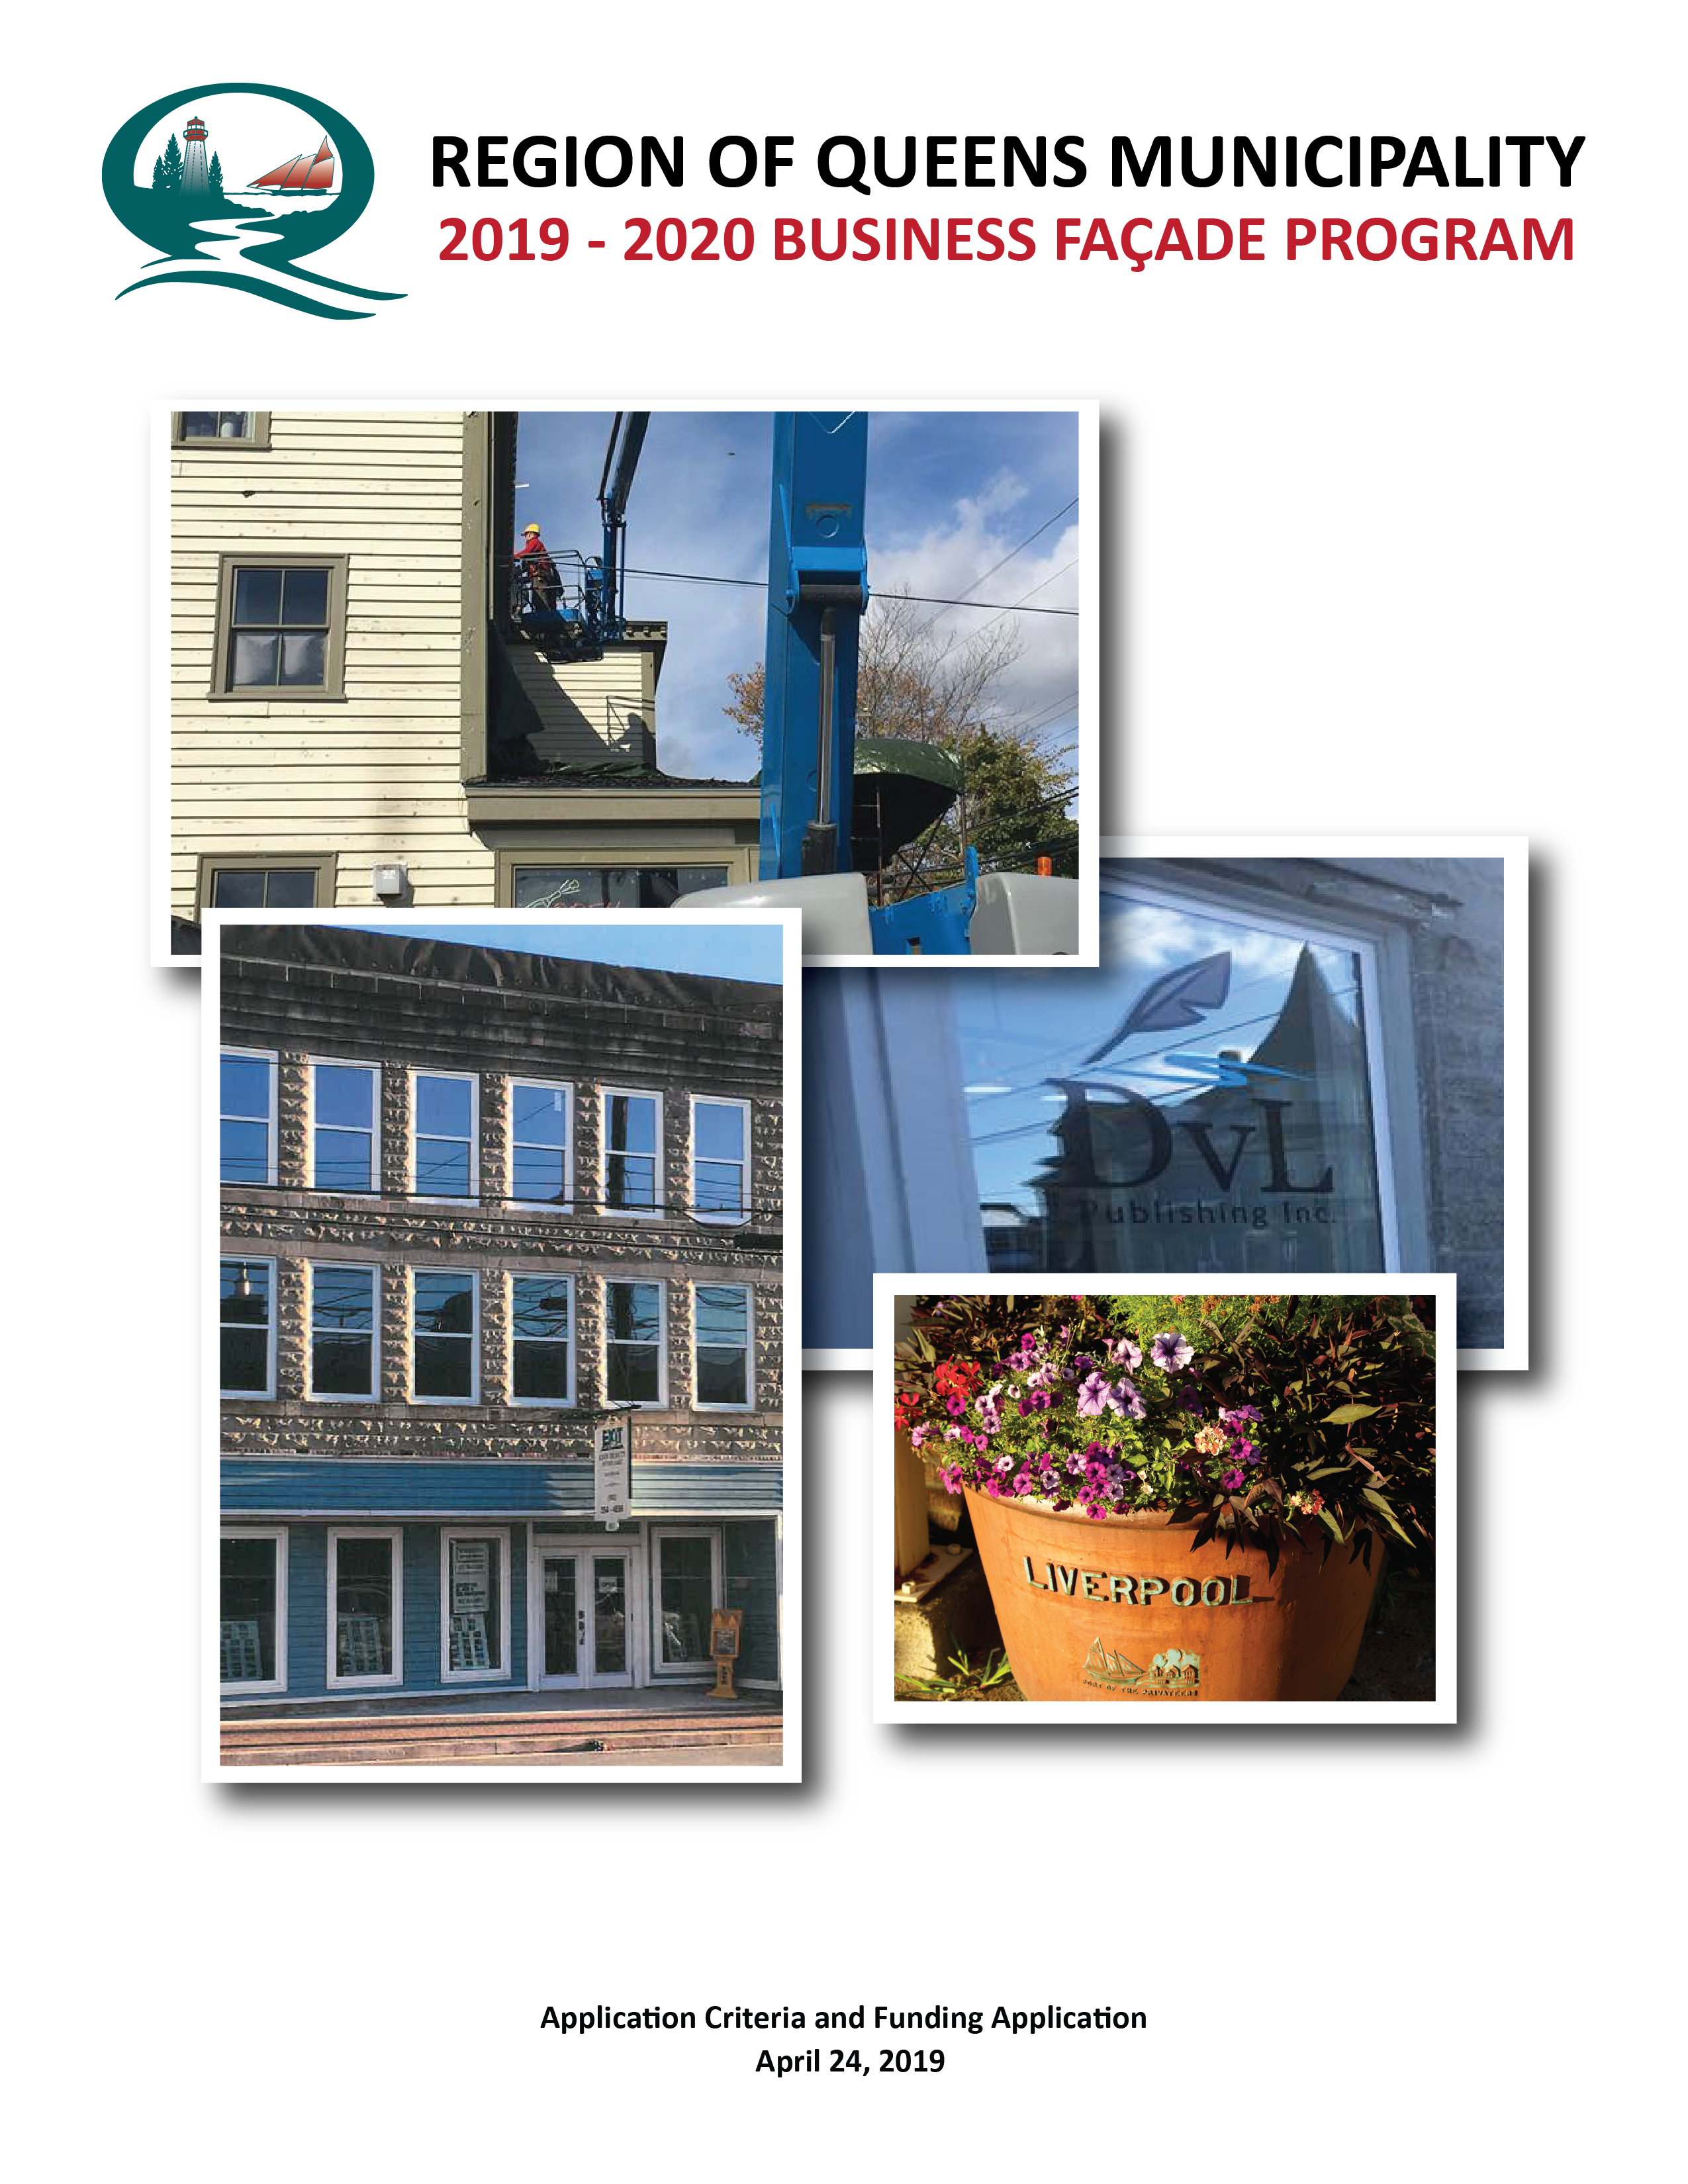 Business Facade Program Cover Page 2019 2020 01